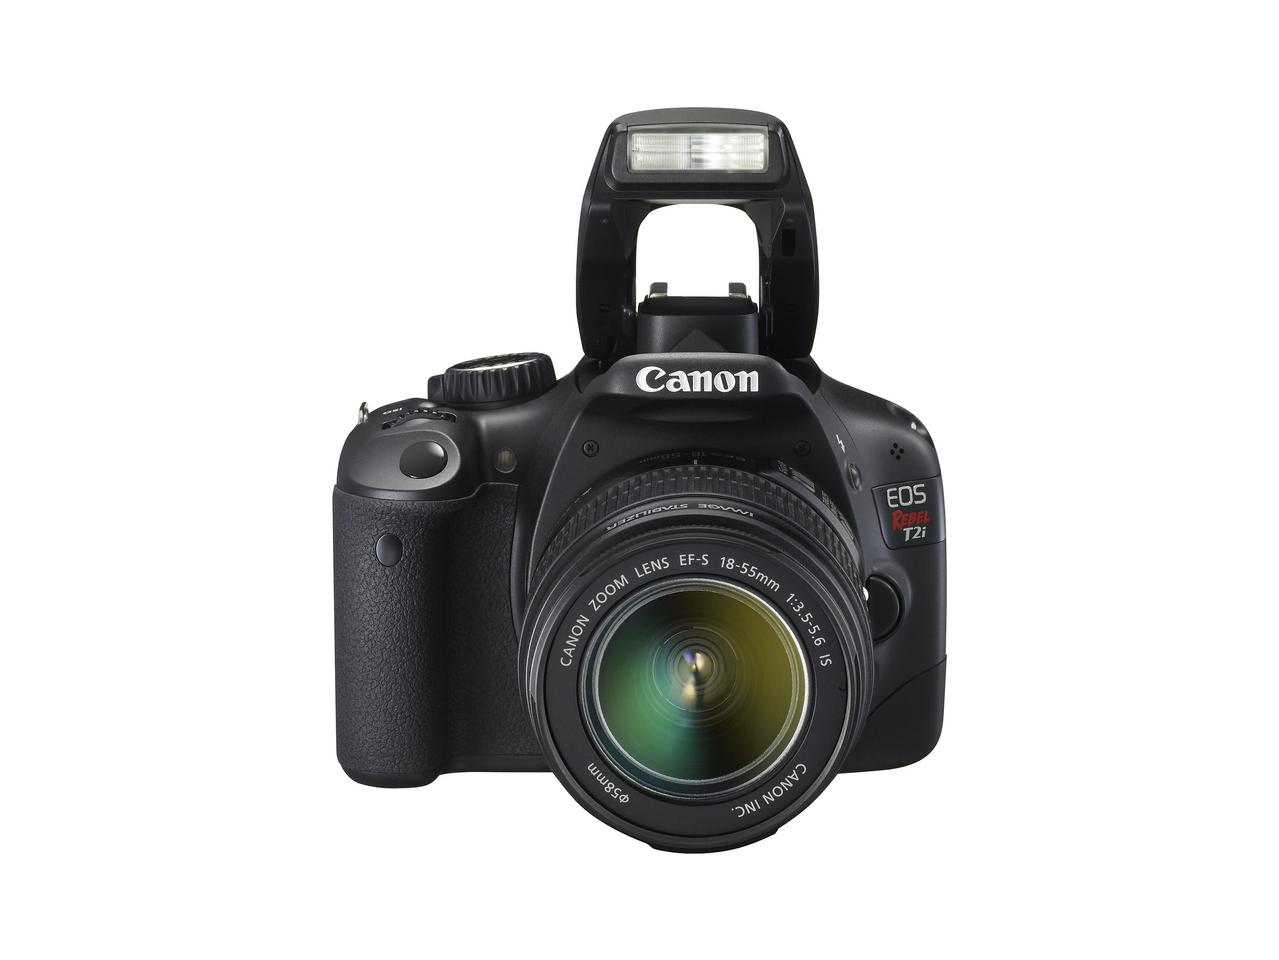 EOS Rebel T2i Digital SLR camera - Flash Open